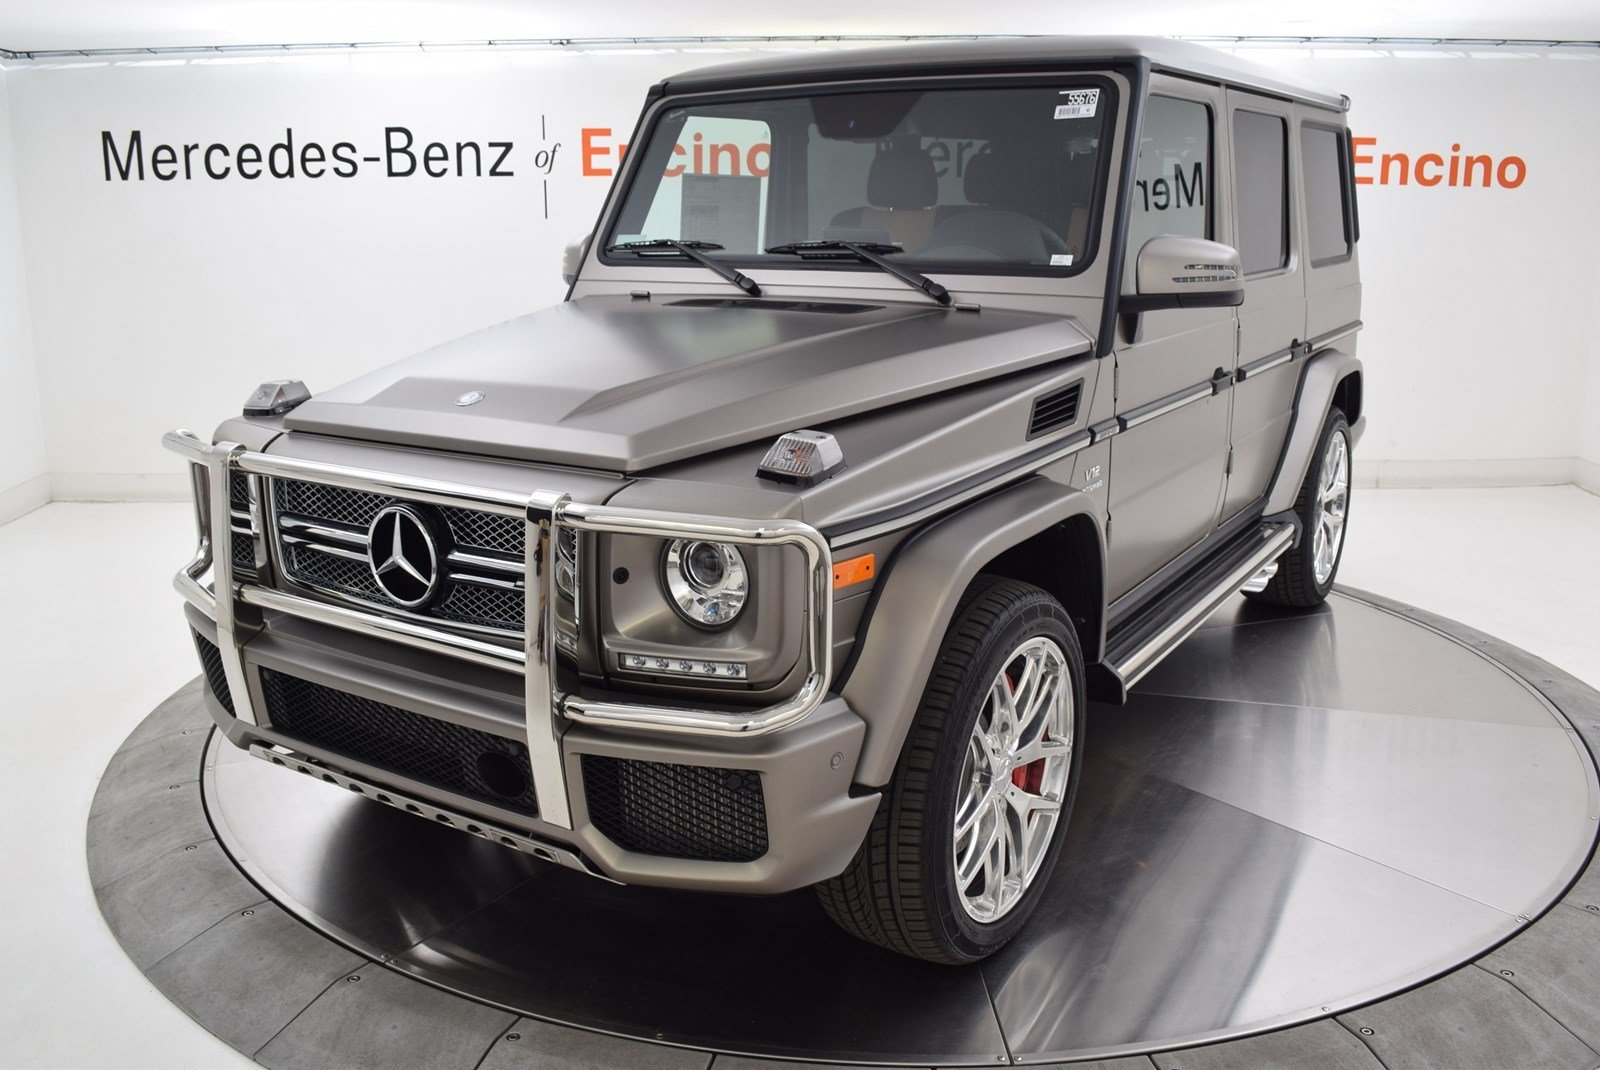 new 2017 mercedes-benz g-class g 65 amg® suv suv in encino #55676